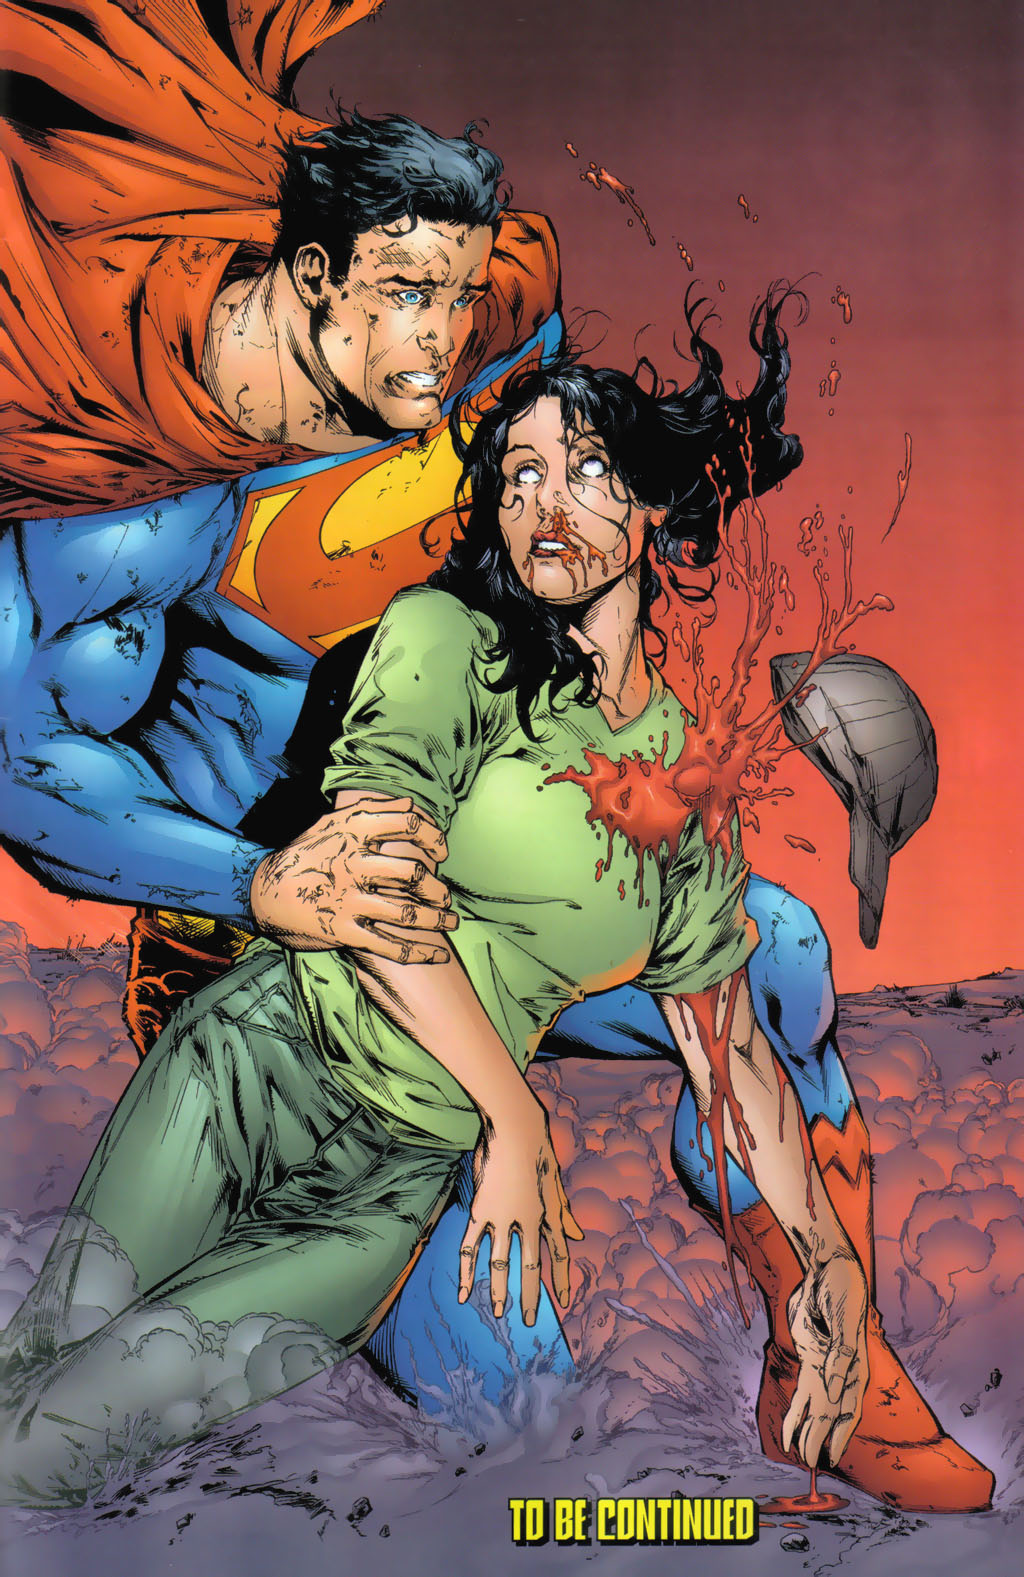 http://img4.wikia.nocookie.net/__cb20110805212019/marvel_dc/images/0/0b/Lois_Lane_0024.jpg